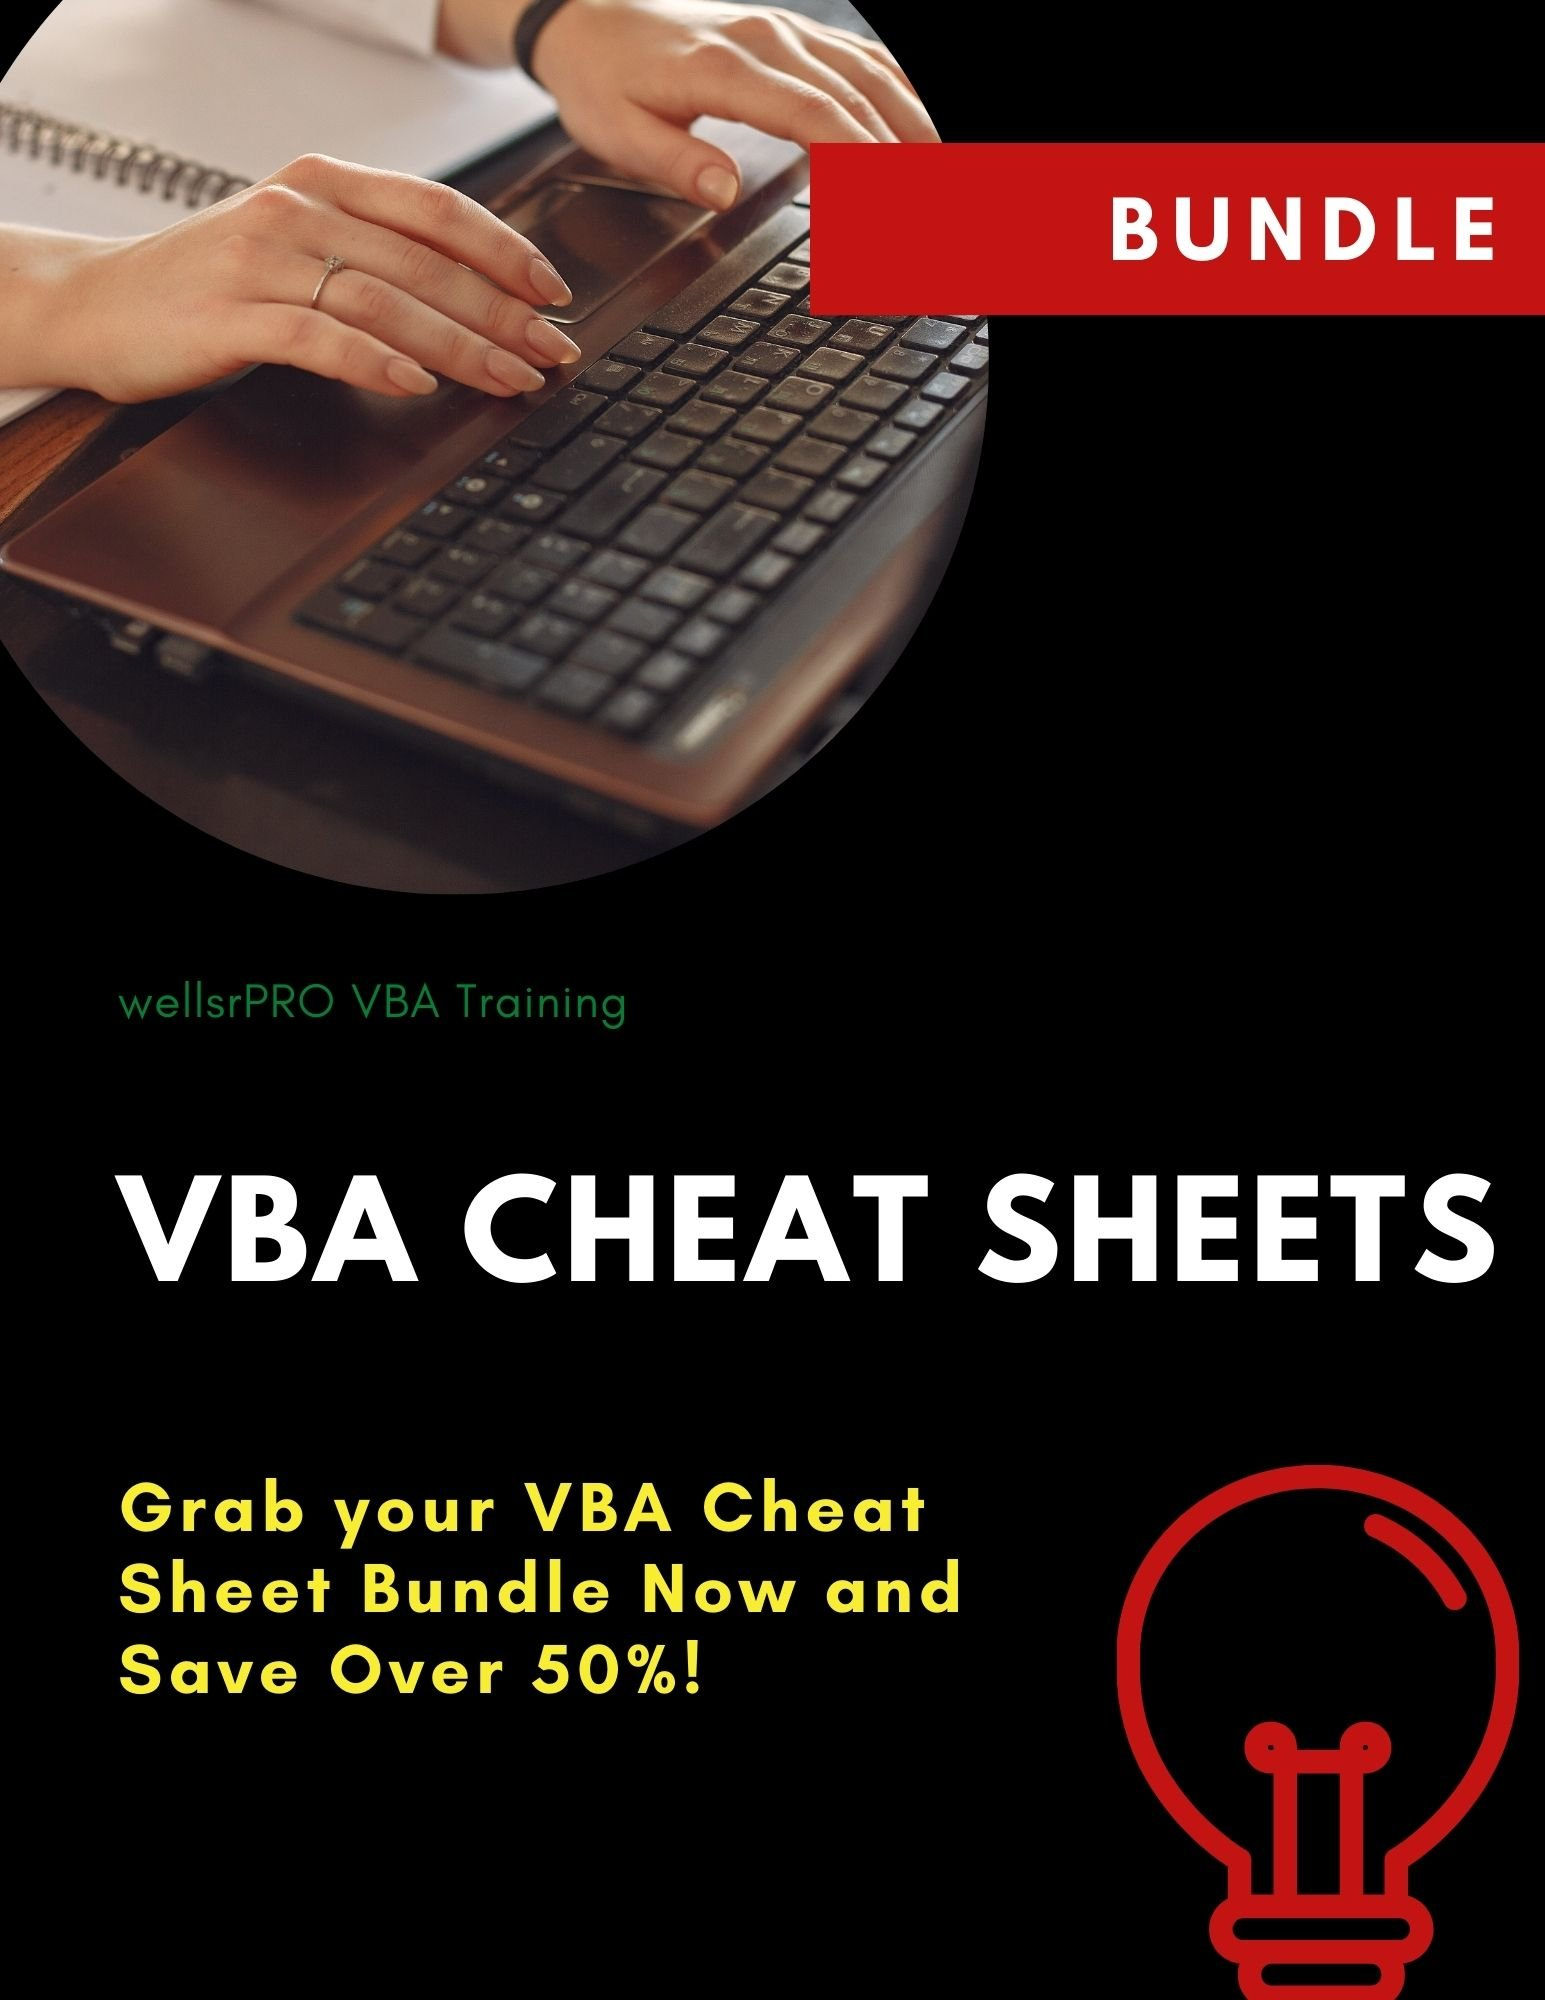 Grab your VBA Cheat Sheet Bundle